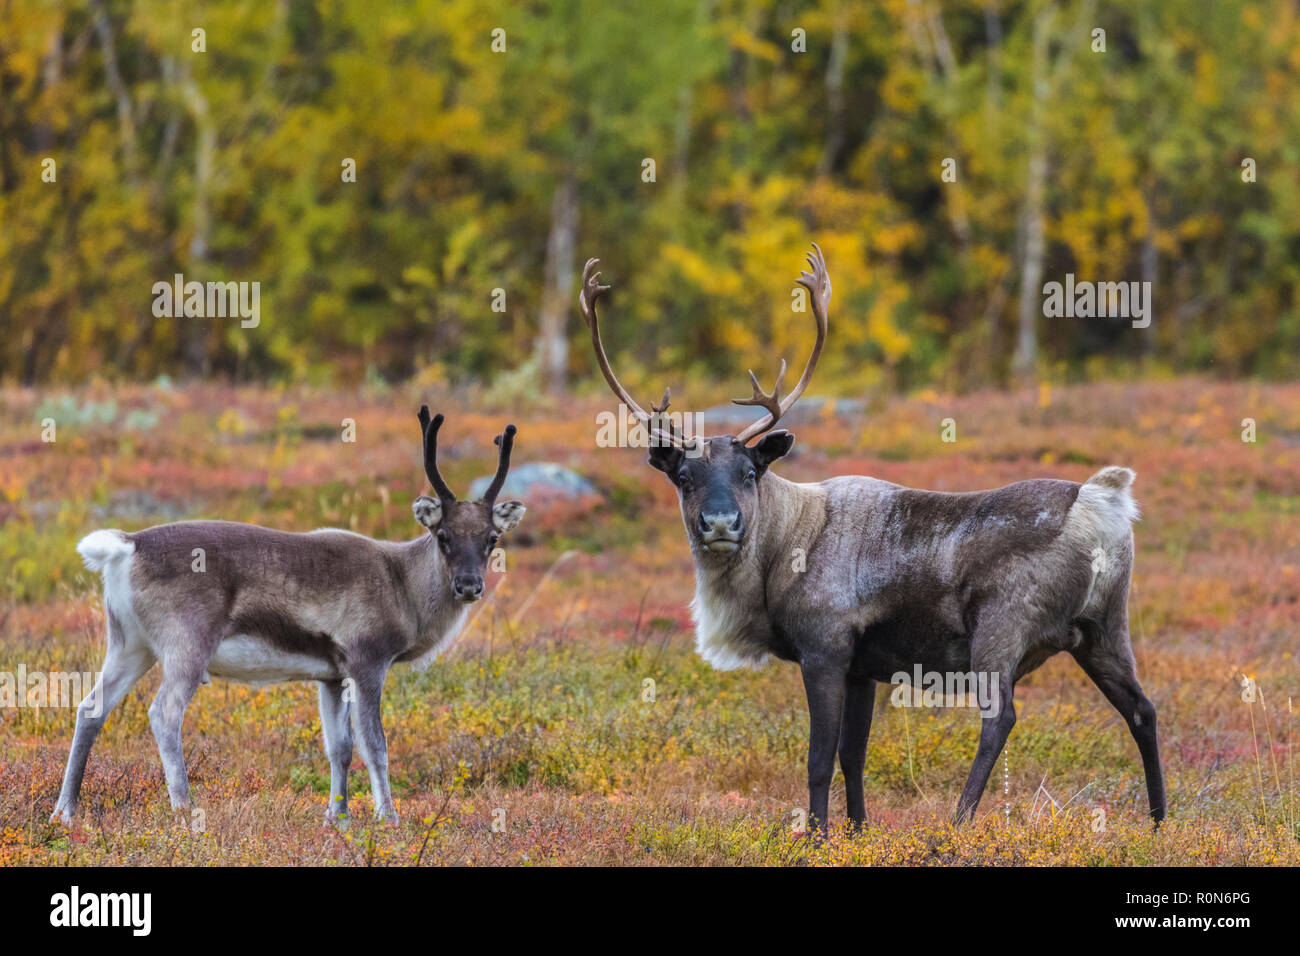 Two Reindeers, Rangifer tarandus, looking in to the camera, autumn season with yellow trees in background, Stora sjöfallets national park, Laponia, Gä - Stock Image